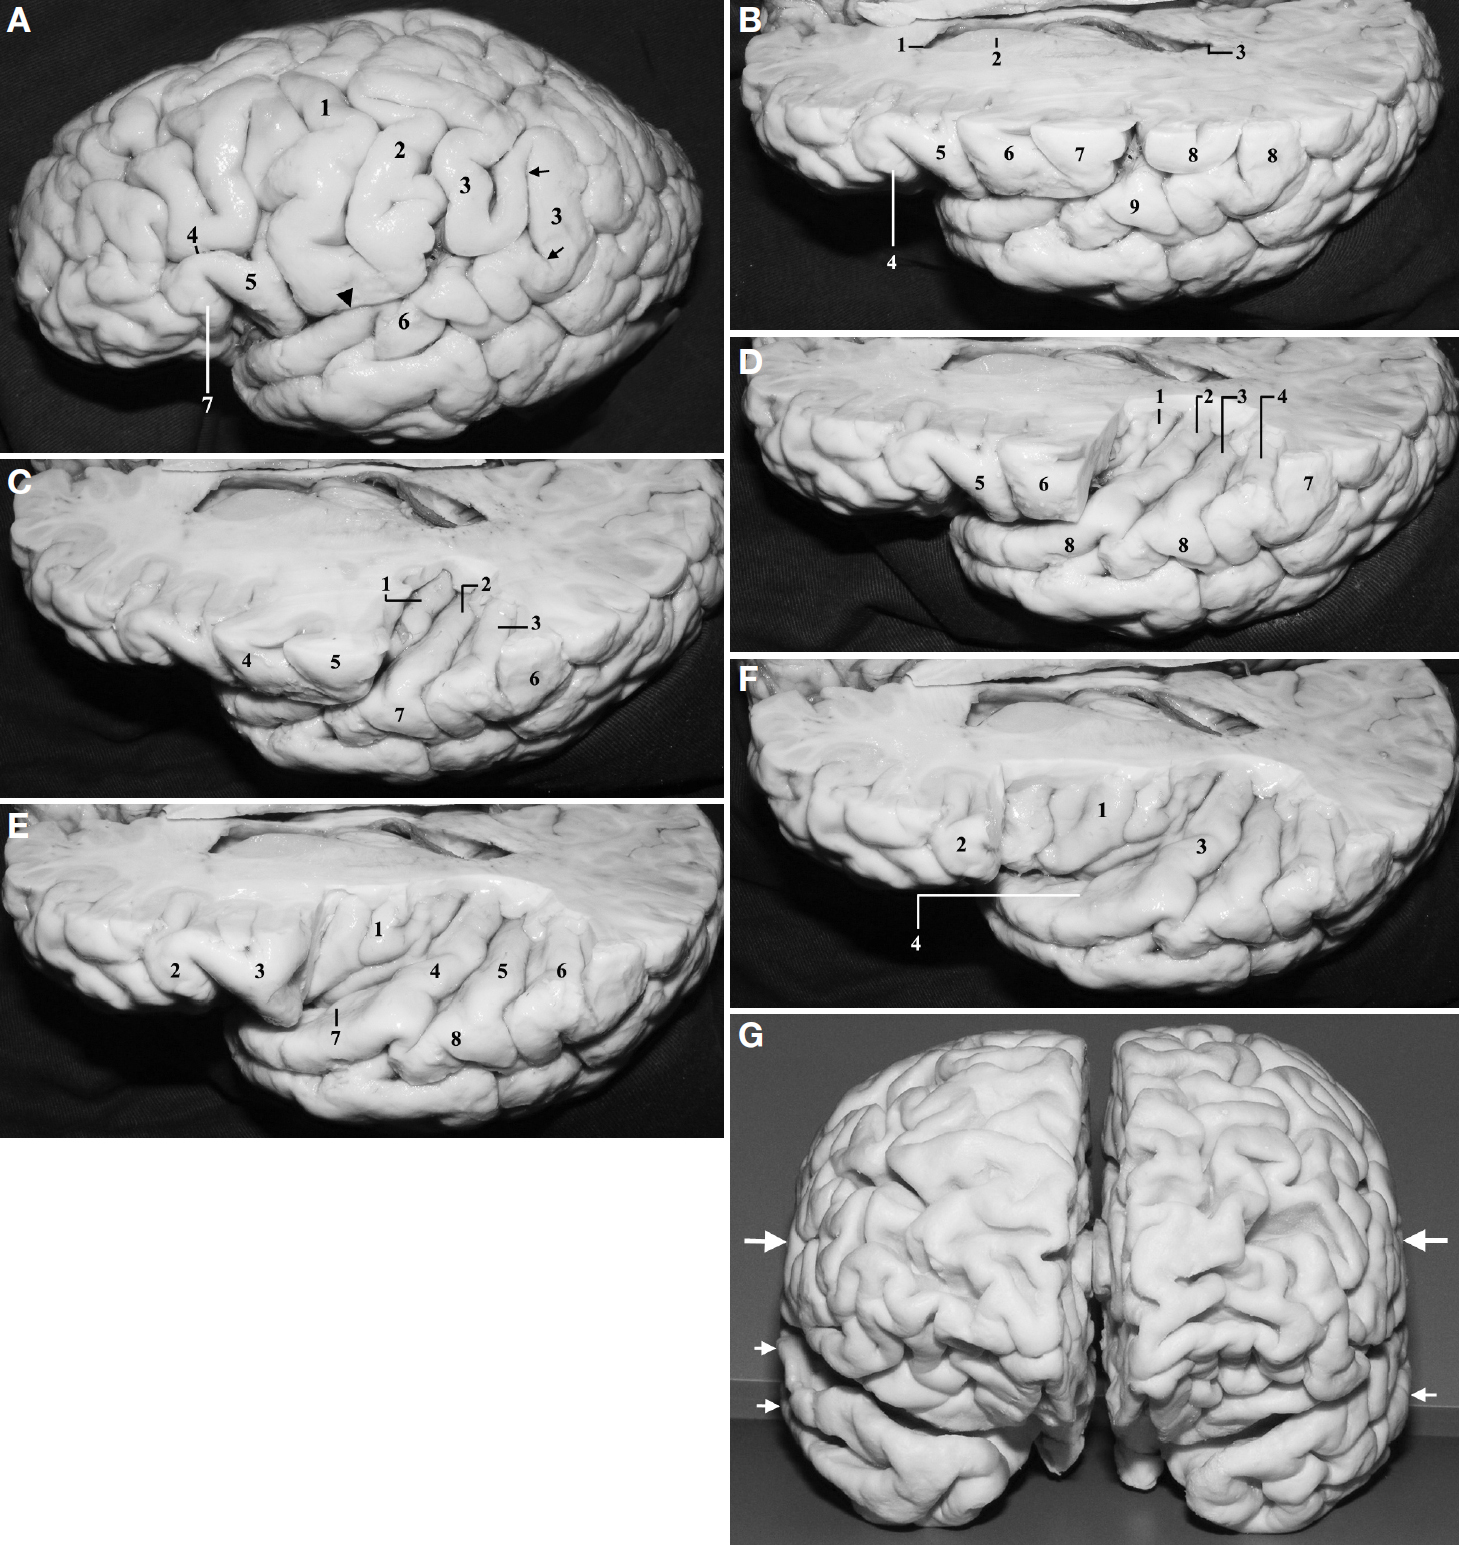 Figure 4. A, superolateral view of the left hemisphere. 1, precentral gyrus; 2, postcentral gyrus; 3, supramarginal gyrus; 4, inferior frontal sulcus; 5, pars opercularis of the inferior frontal gyrus; 6, superior temporal gyrus; 7, pars triangularis of the inferior frontal gyrus. The arrows indicate the ascending and descending terminal branches of the posterior ramus of the sylvian fissure. The arrowhead indicates posterior ramus of the sylvian fissure. The largest transverse diameter of the cerebrum usually corresponds to the level of postcentral gyrus and to the middle and the superior temporal gyri (at the level of the postcentral gyrus). B, superolateral view of the same specimen shown in A. A transverse cut has been made by following a line drawn from the base of the pars triangularis of the inferior frontal gyrus to the supramarginal gyrus, immediately above the posterior ramus of the sylvian fissure. 1, frontal horn; 2, head of the caudate nucleus; 3, atrium; 4, pars triangularis; 5, pars opercularis; 6, precentral gyrus; 7, postcentral gyrus; 8, supramarginal gyrus; 9, superior temporal gyrus. C, the operculum of the supramarginal gyrus has been removed to display the middle and posterior transverse temporal gyri and the medial end of the Heschl's gyrus. 1, medial part of the Heschl's gyrus (anterior transverse temporal gyrus); 2, middle transverse temporal gyrus; 3, posterior transverse temporal gyrus; 4, precentral gyrus; 5, postcentral gyrus; 6, posterior end of the superior temporal gyrus turning around the descending branch of the posterior ramus of the sylvian fissure to become the supramarginal gyrus; 7, superior temporal gyrus. The supramarginal gyrus constitutes the posterior wall of the posterior ramus of the sylvian fissure. D, the operculum of the postcentral gyrus has been removed to display the Heschl's gyrus and posterior end of the insula. 1, posterior long gyrus of the insula; 2, Heschl's gyrus; 3, middle transverse temporal gyrus; 4, post